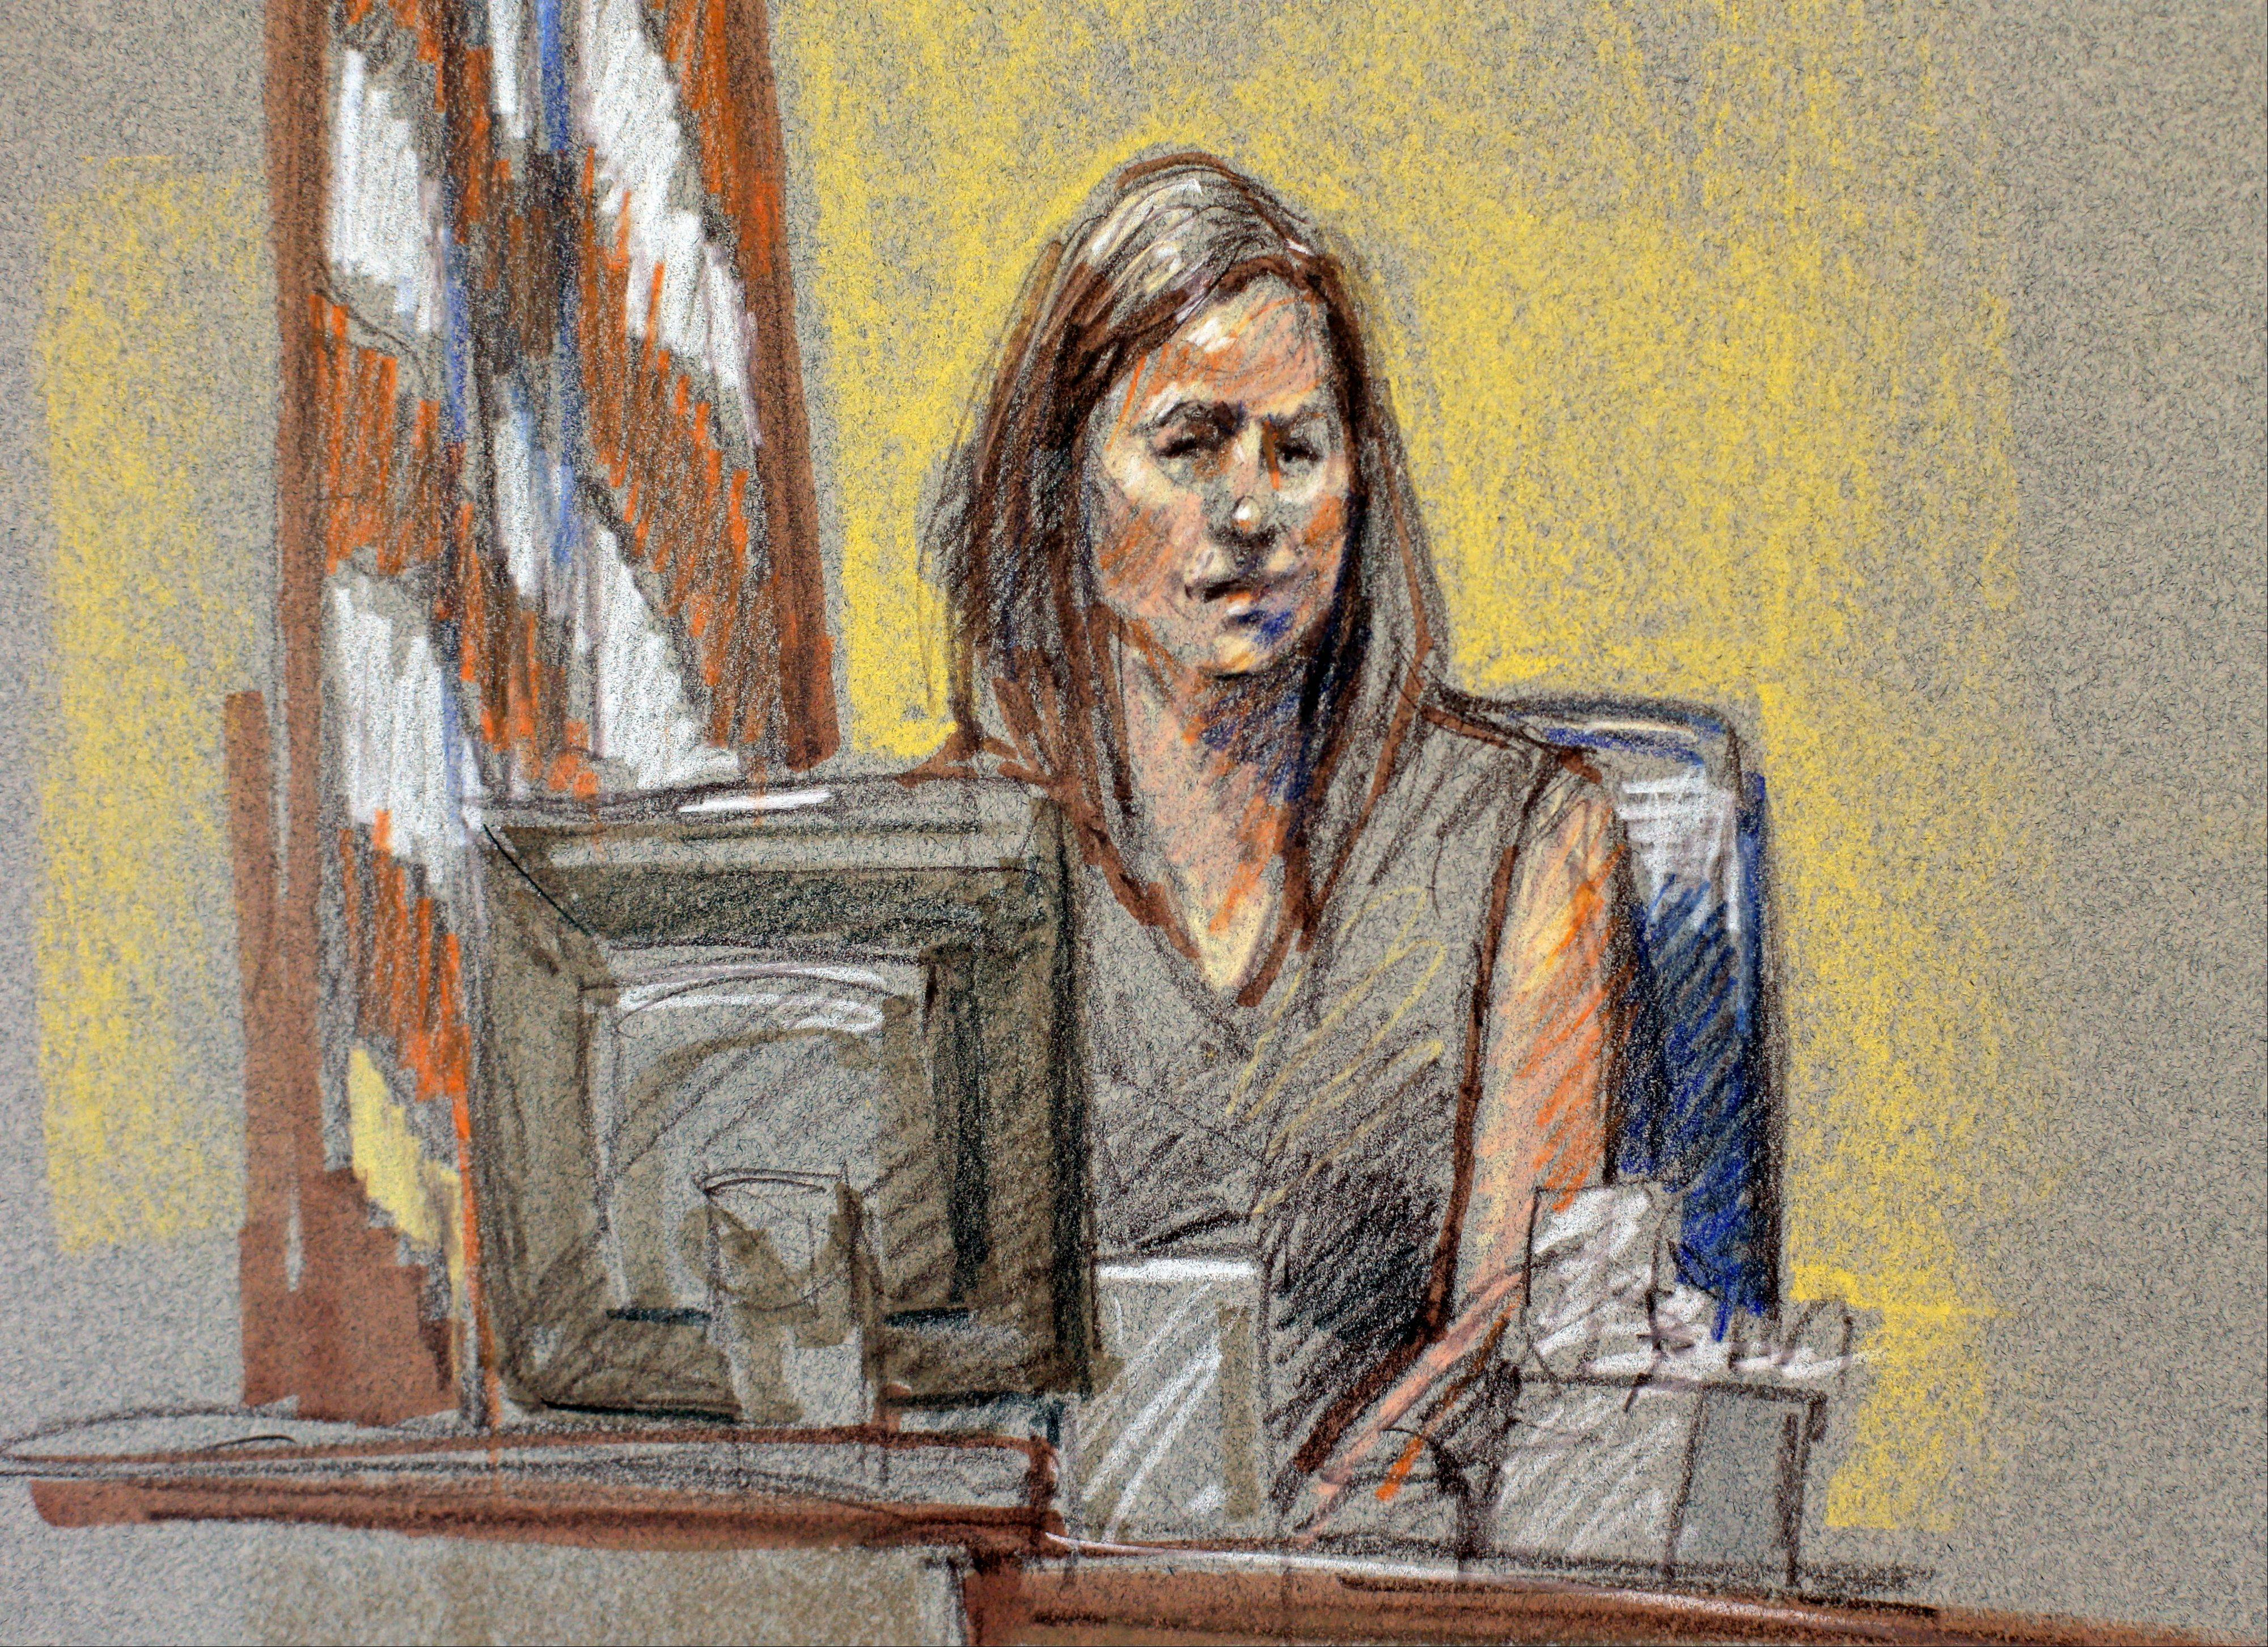 Angela Rivera, wife of Maj. Libardo Caraveo who was one of 13 people killed in the Fort Hood shootings, appears on the witness stand during the sentencing phase for Maj. Nidal Hasan, Monday, August 26, 2013, in Fort Hood, Texas. The jury found Hasan unanimously guilty on the 13 charges of premeditated murder and he is eligible for the death penalty in the November 2009 attack at Ford Hood.